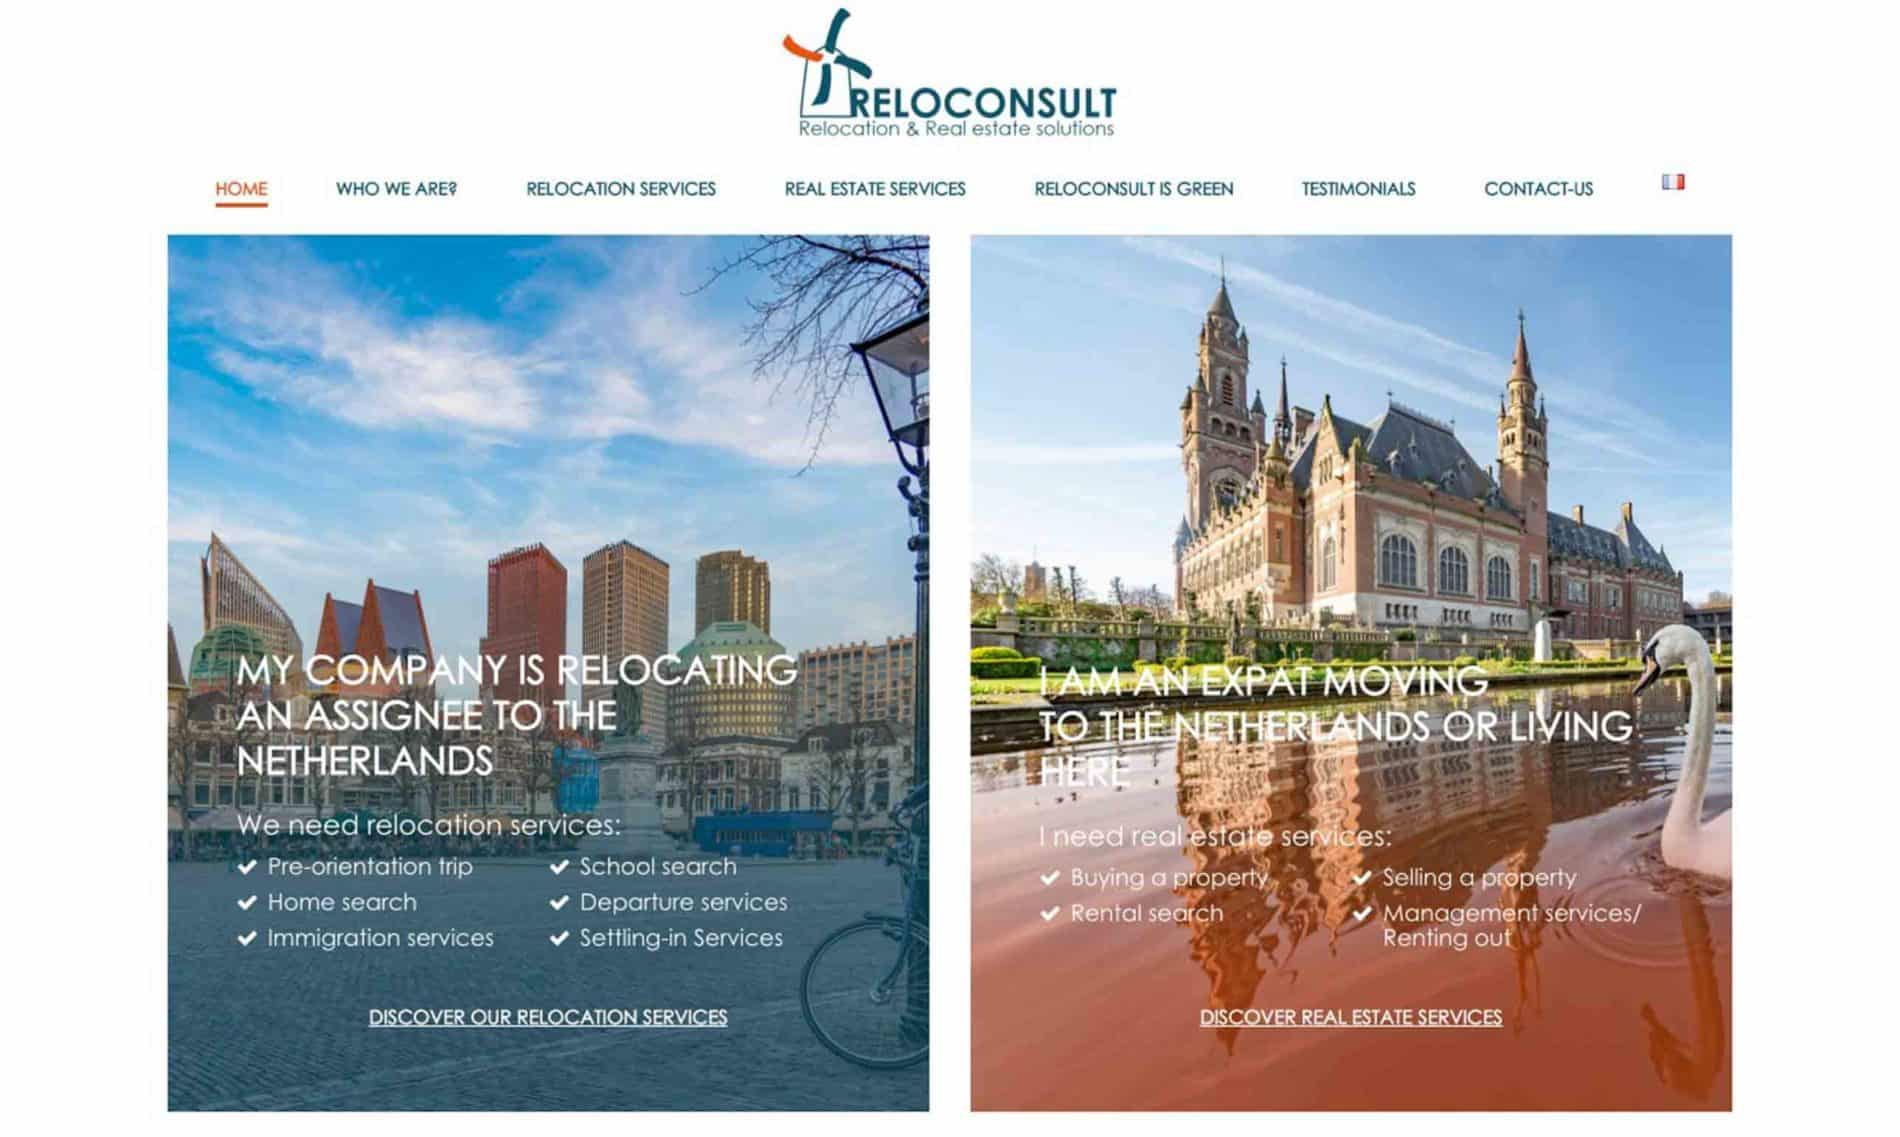 New-Homepage-Reloconsult-by-Rocque-Design